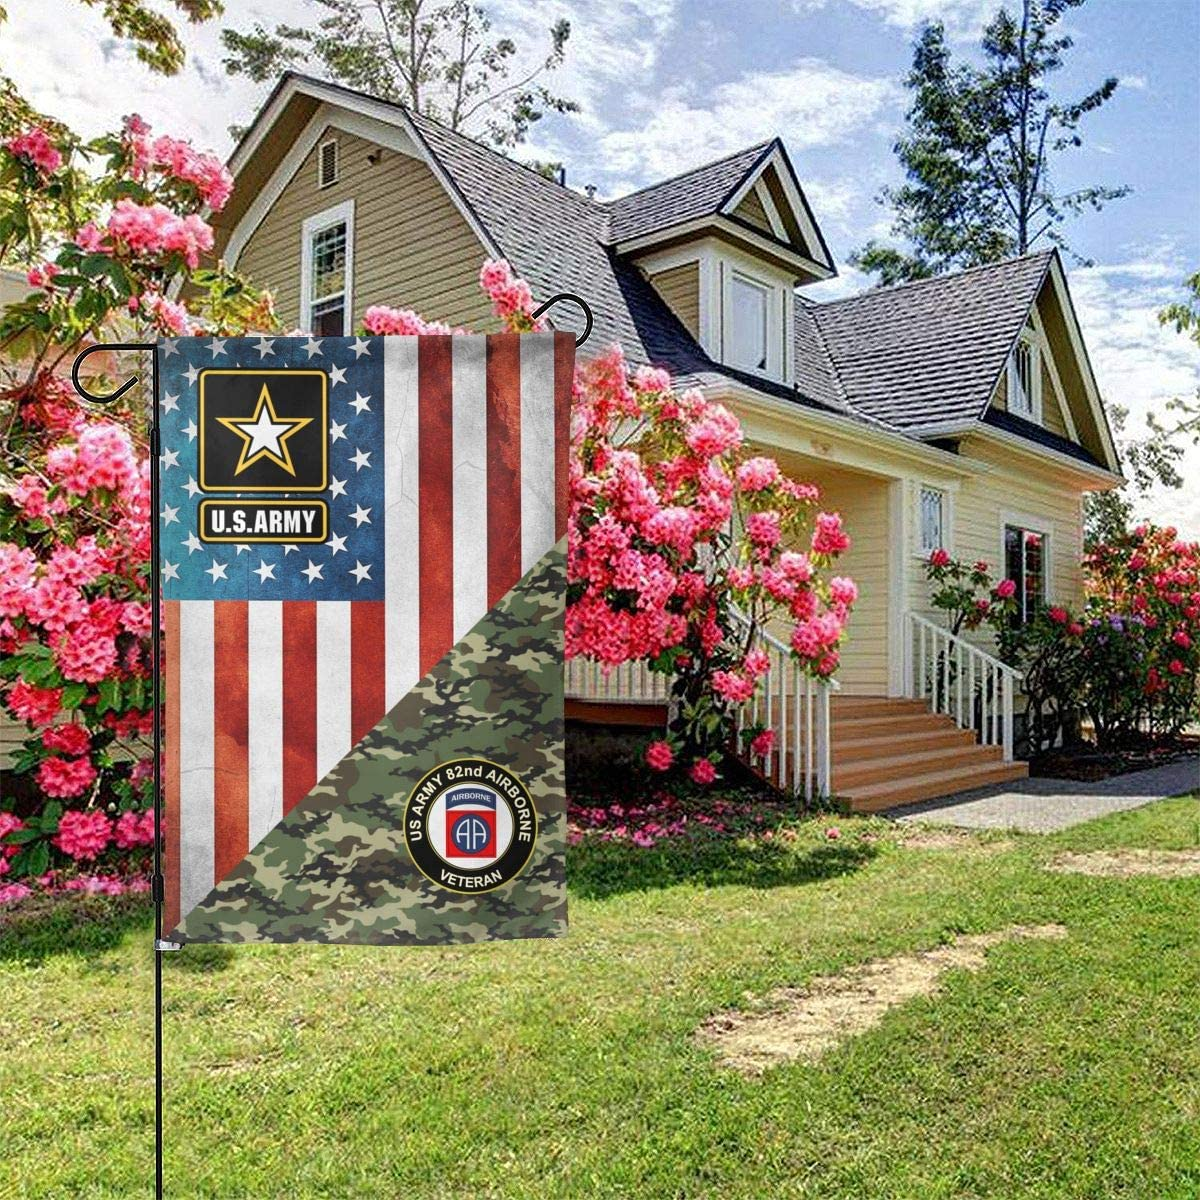 """United States Army 82nd Airborne Garden Flag Welcome Banner for Patio Lawn Party Yard Home Outdoor Decor, On Both Sides, 12.5""""x18"""" / 28""""x40"""""""